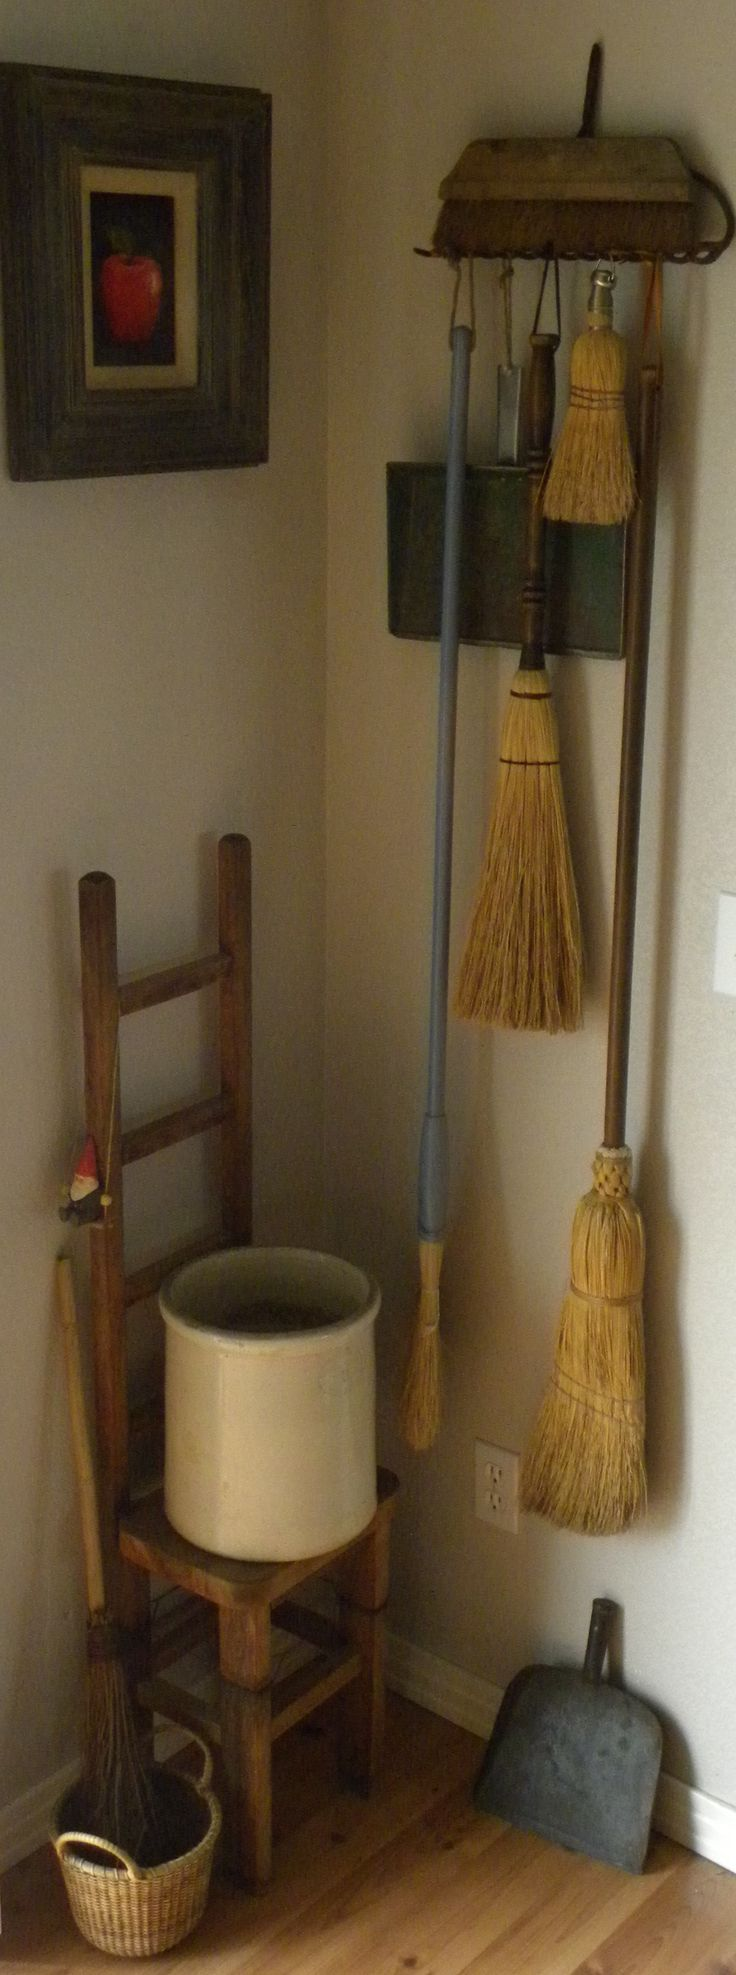 broom holder Like the crock....would use it for trash, like it at little higher level